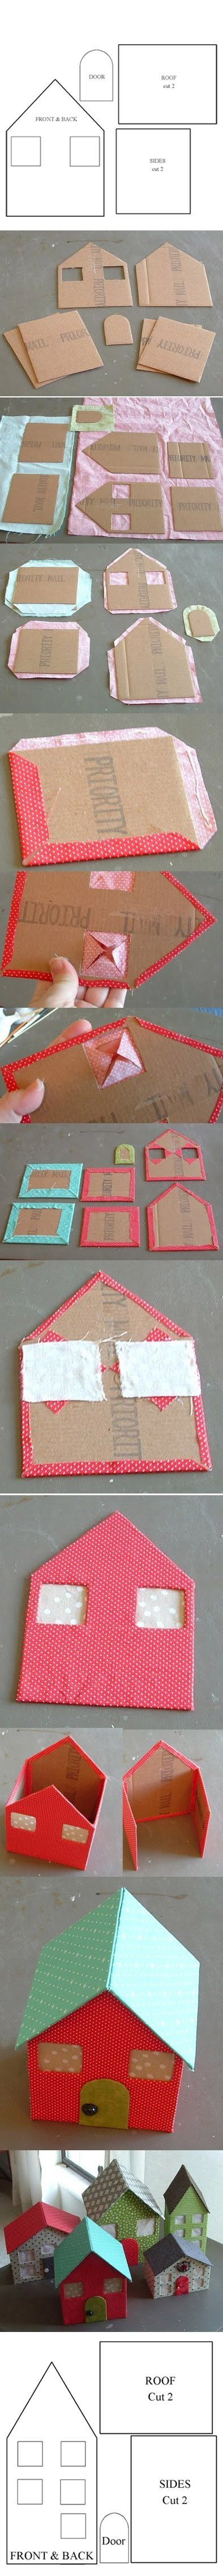 Casitas manualidades y reciclaje pinterest smallest house im thinking use different fabric and battery tea lights to make a christmas village to make a how to make your own doll house from cardboard fabric jeuxipadfo Image collections